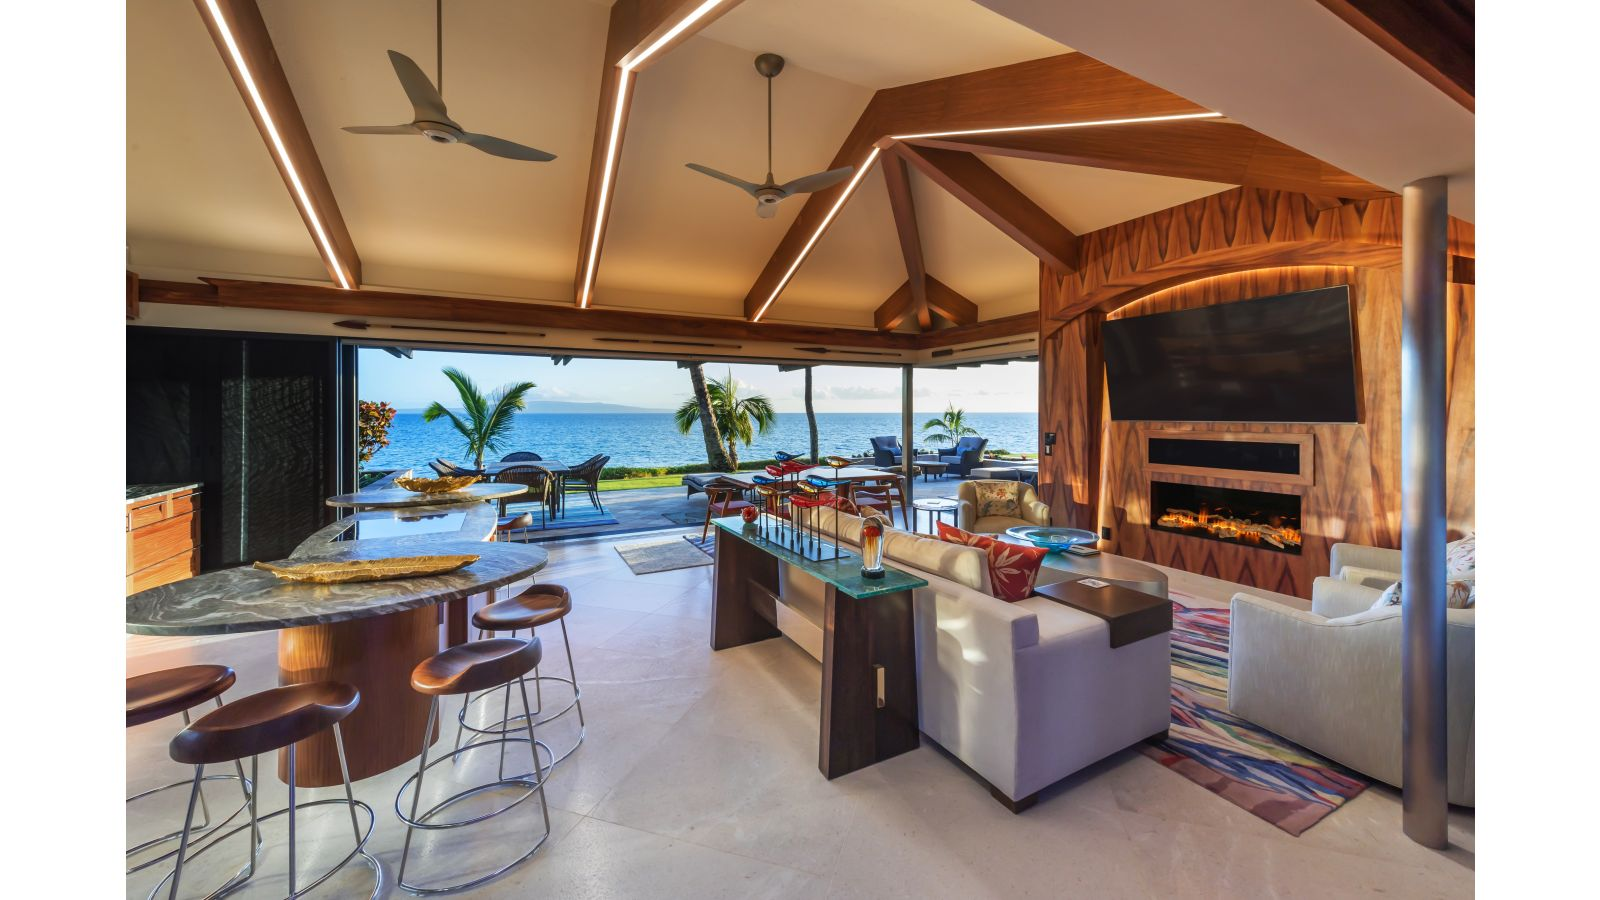 A South Maui Remodel Opening to the Spectacular Ocean View